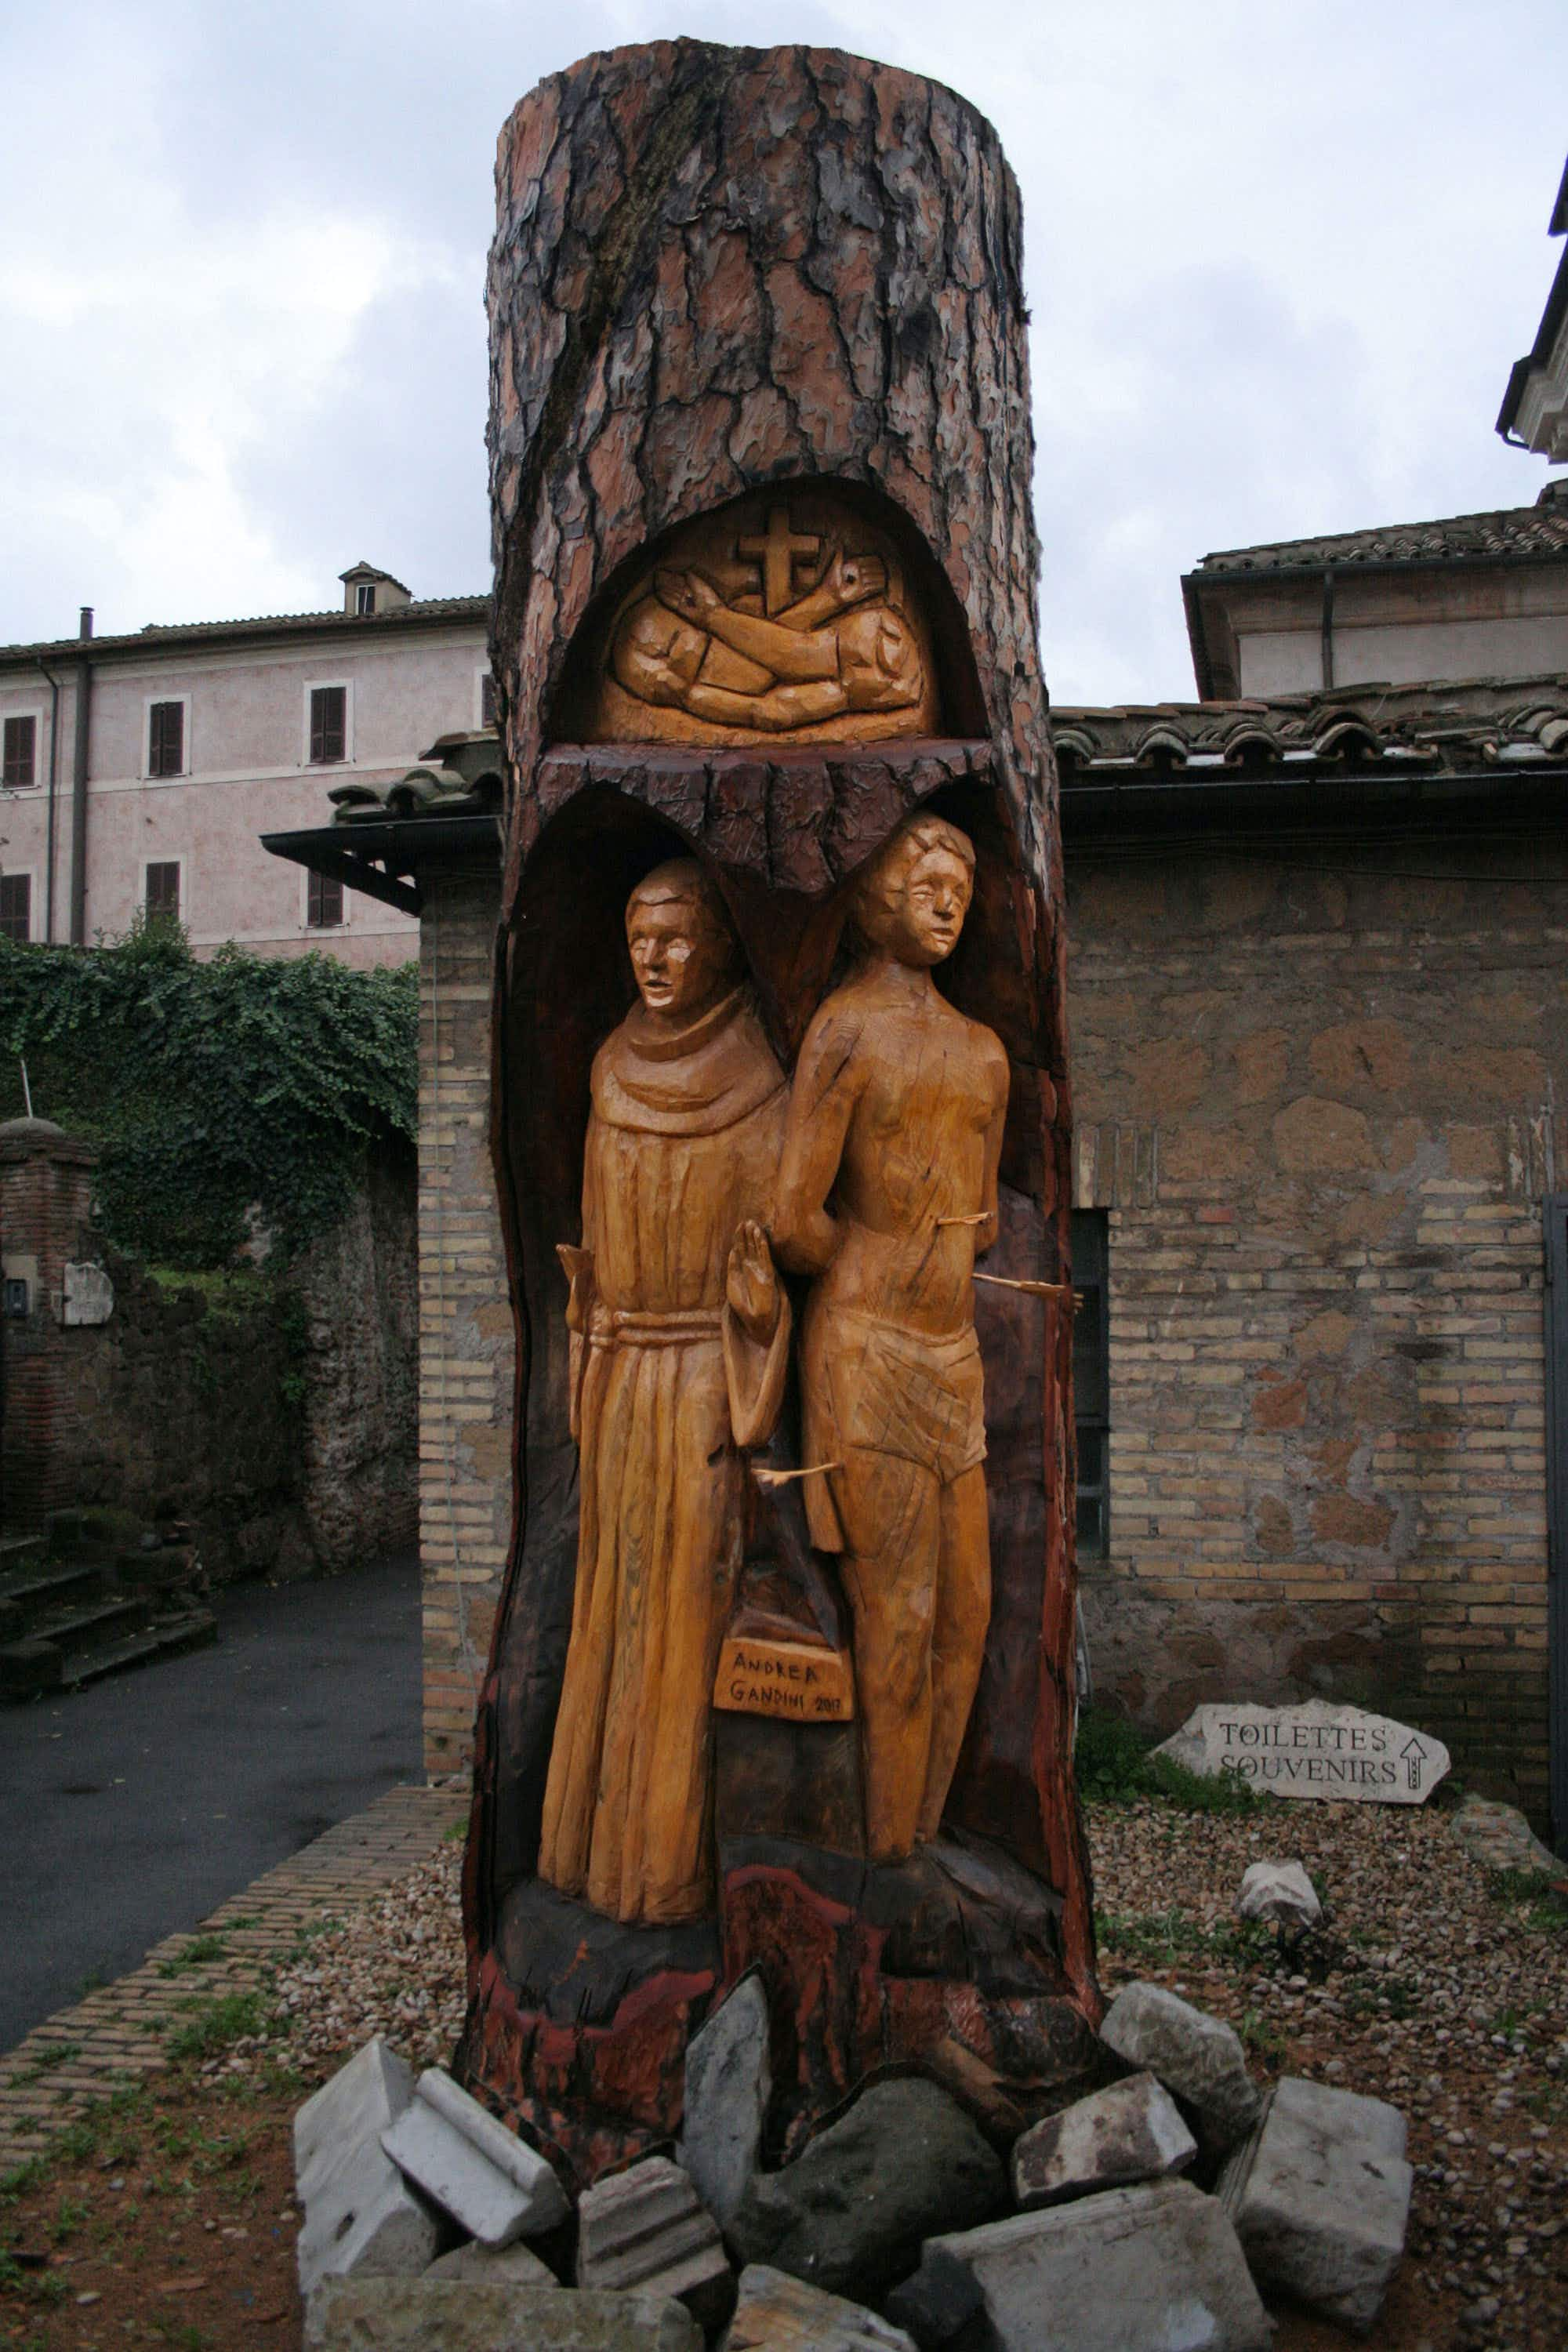 An urban sculptor is turning Rome's tree stumps into works of art